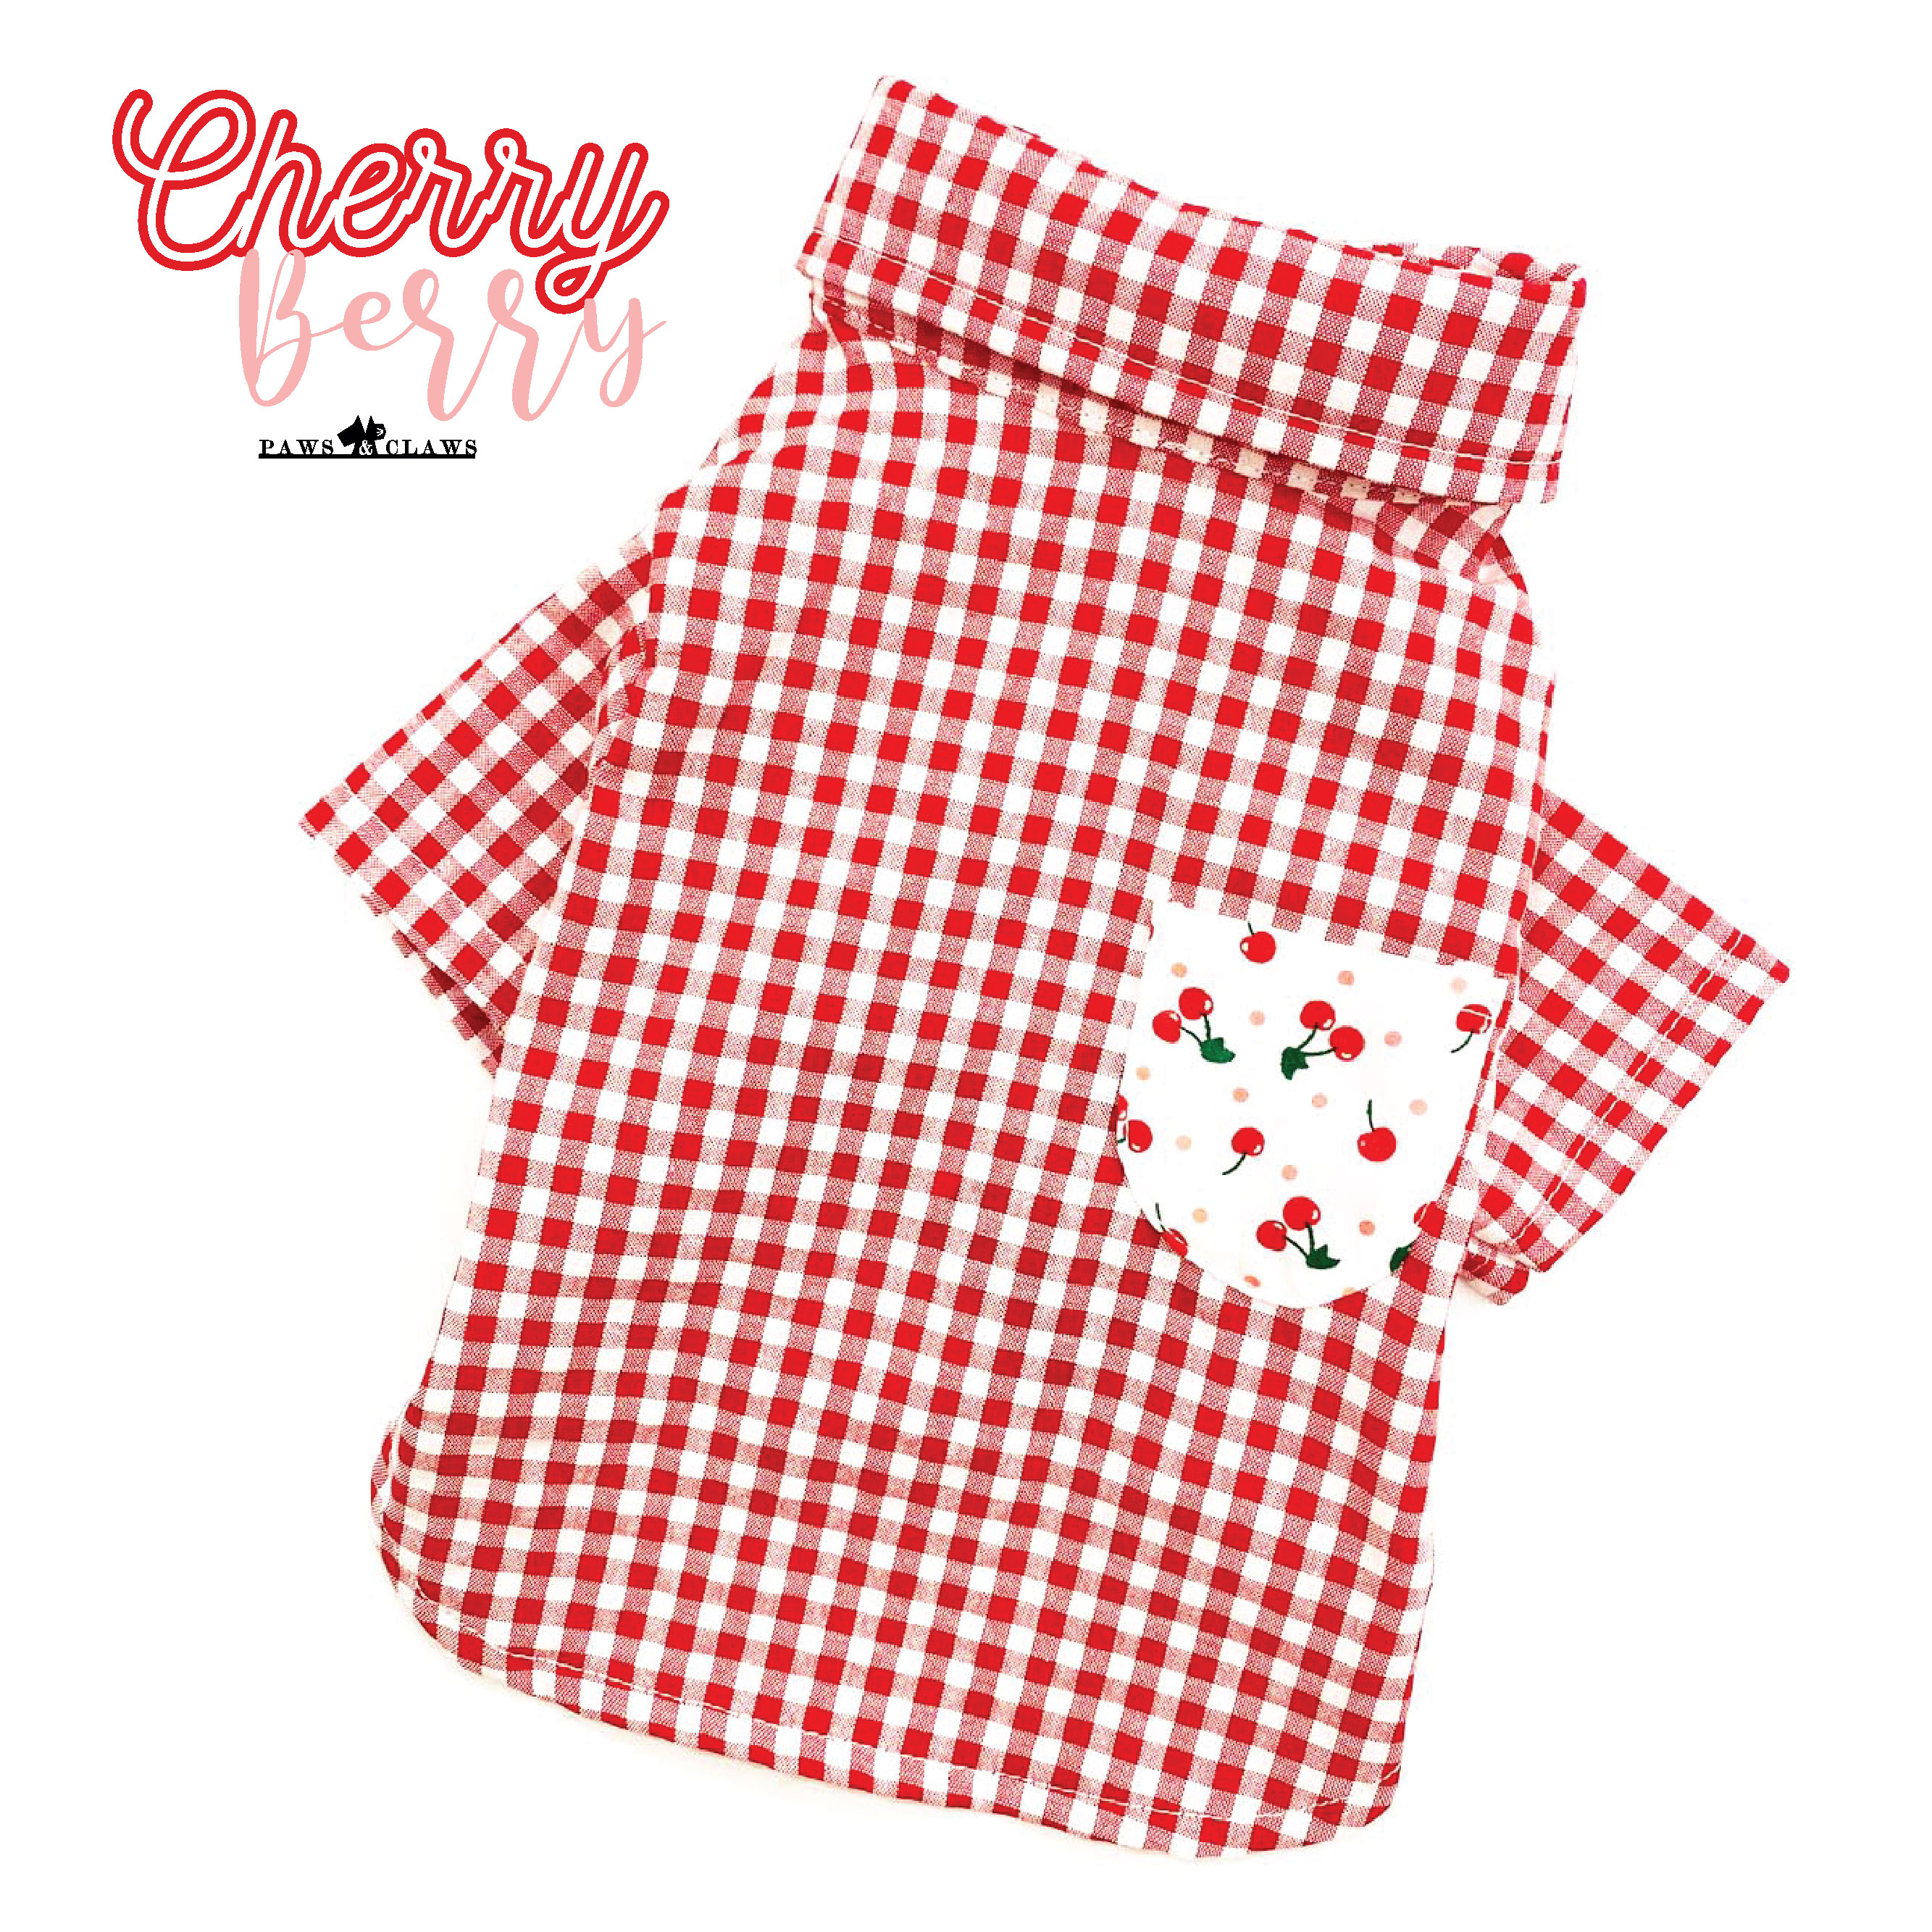 Cherry Berry (Shirt)